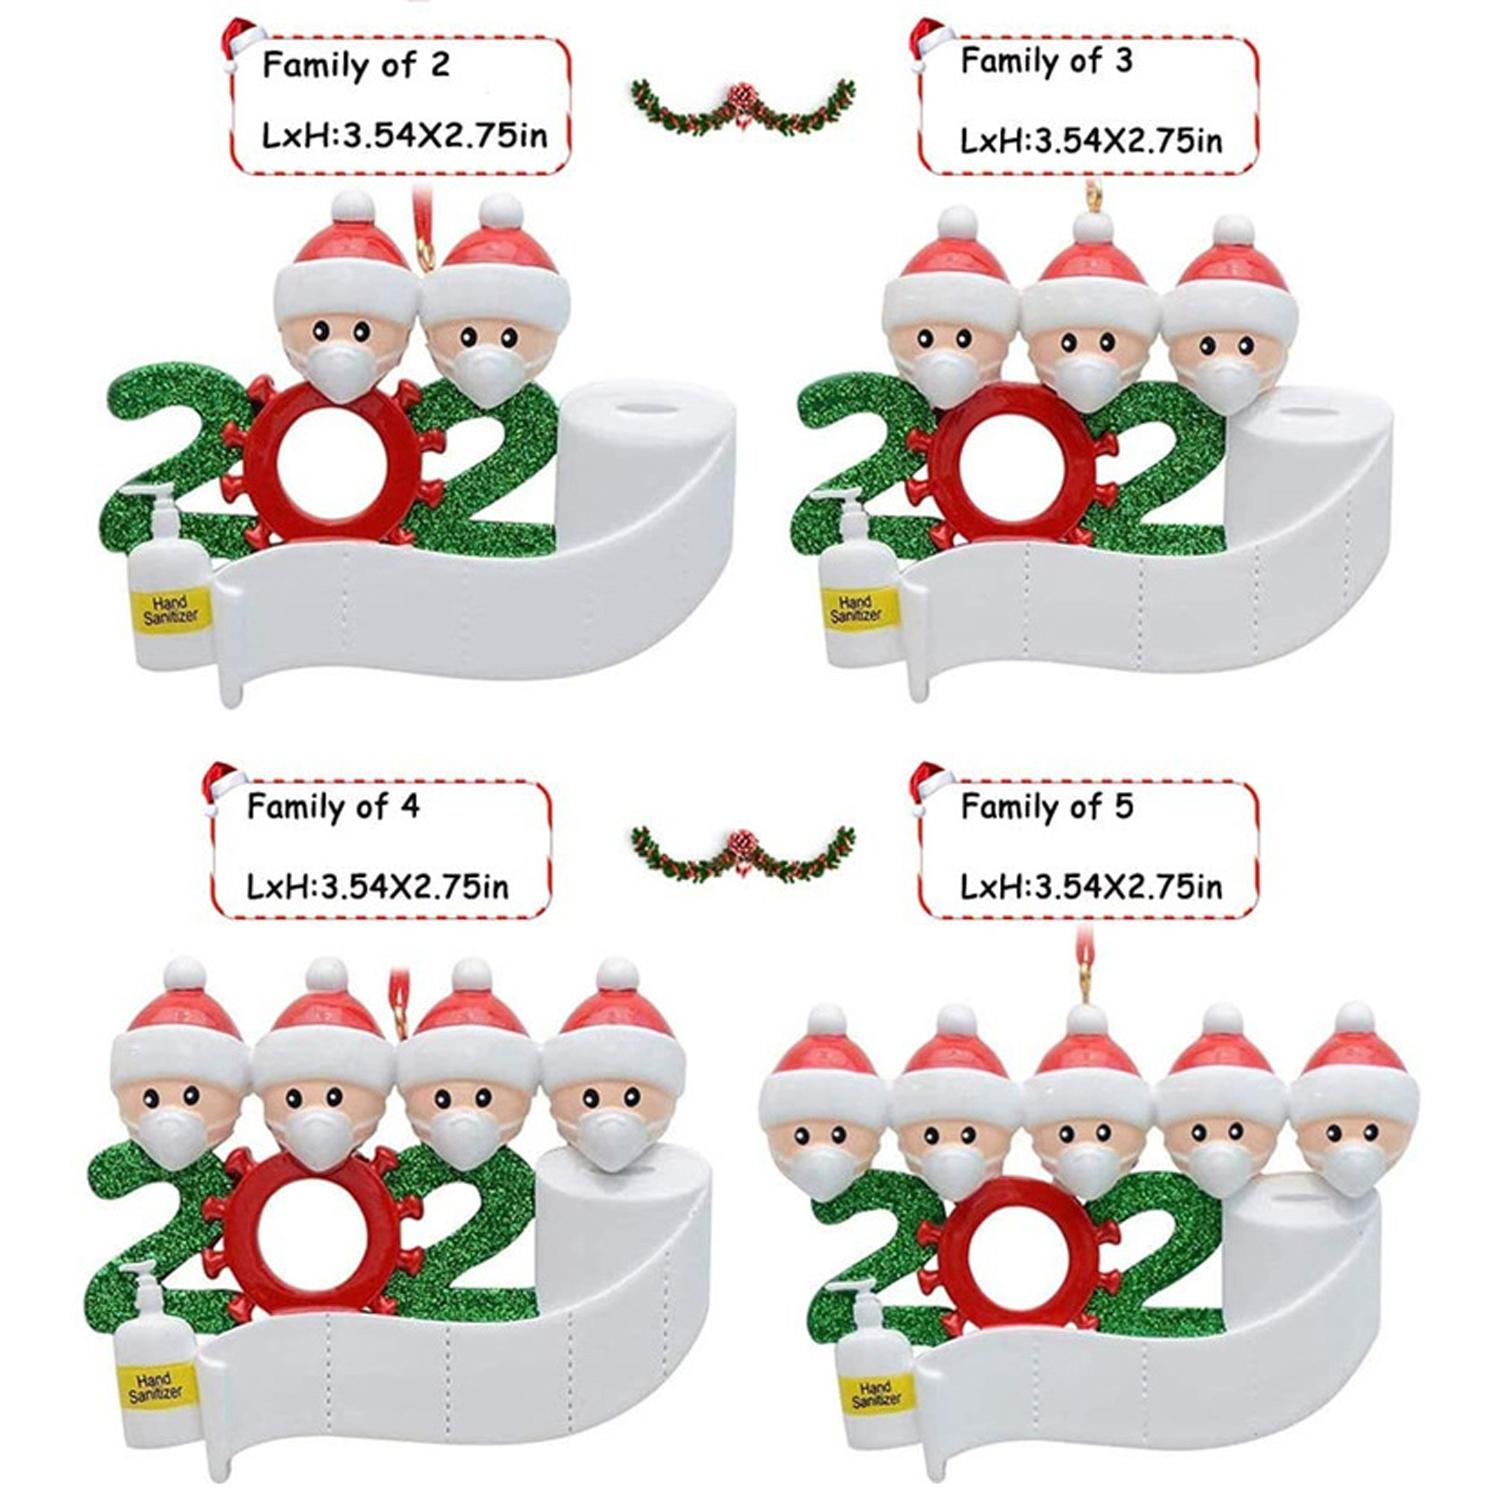 Quarantine Personalized Ornaments Survivor Family of 2 3 4 5 6 7 Face Masks Hand Sanitized Customized Christmas Decorating Creative Toys